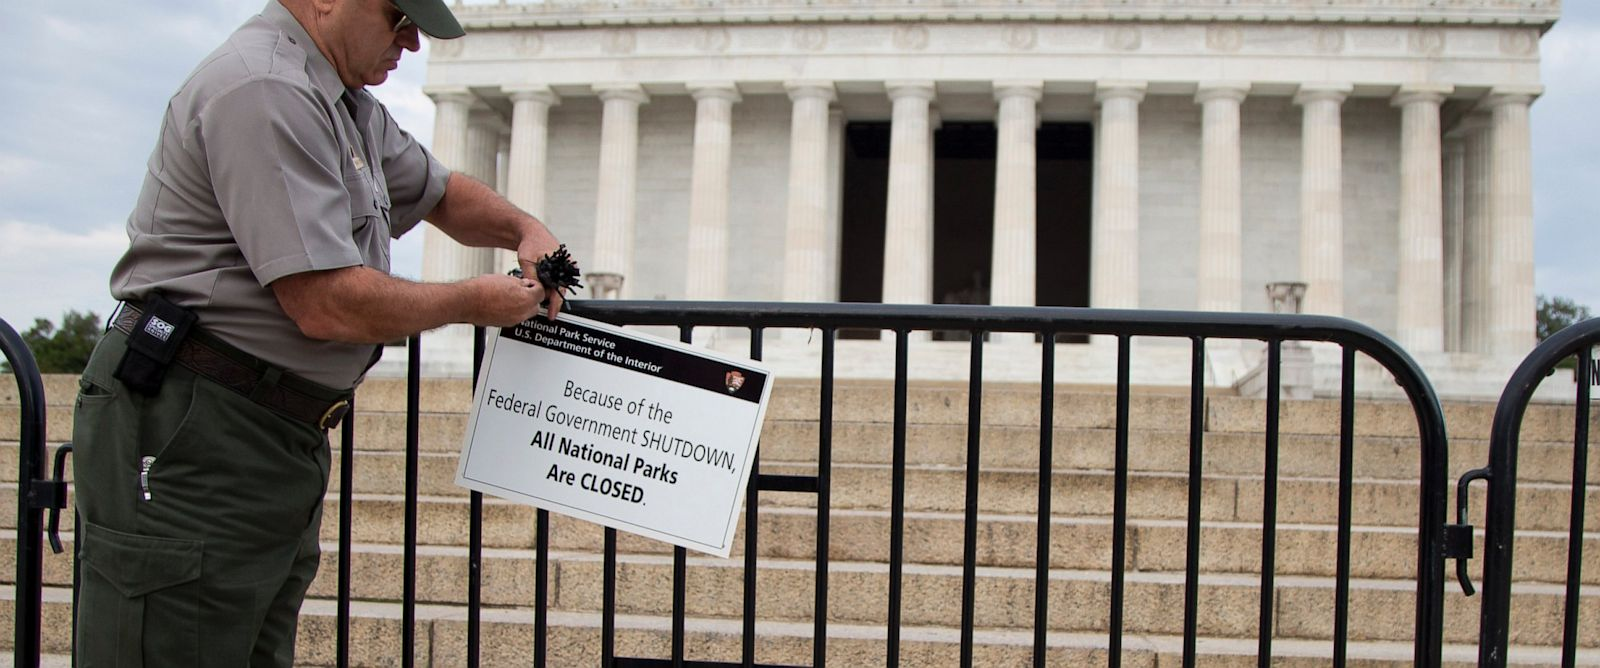 PHOTO: A National Park Service employee posts a sign on a barricade to close access to the Lincoln Memorial in Washington, Oct. 1, 2013.